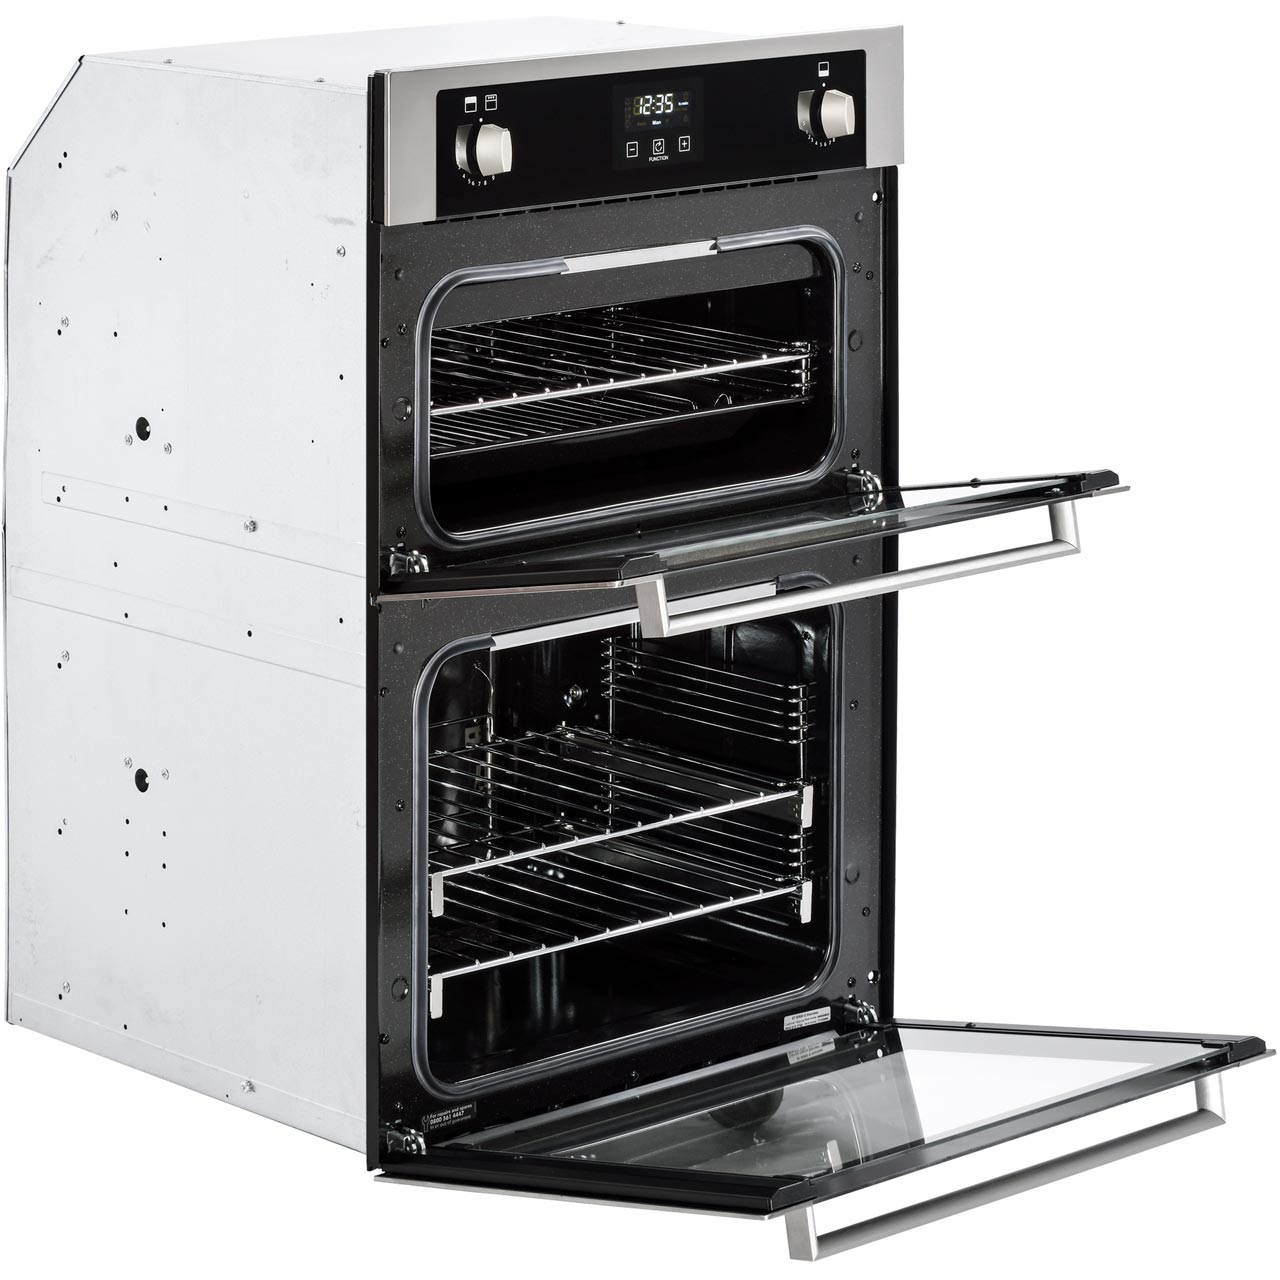 Stoves Bi900g Stoves Double Oven Black Gas